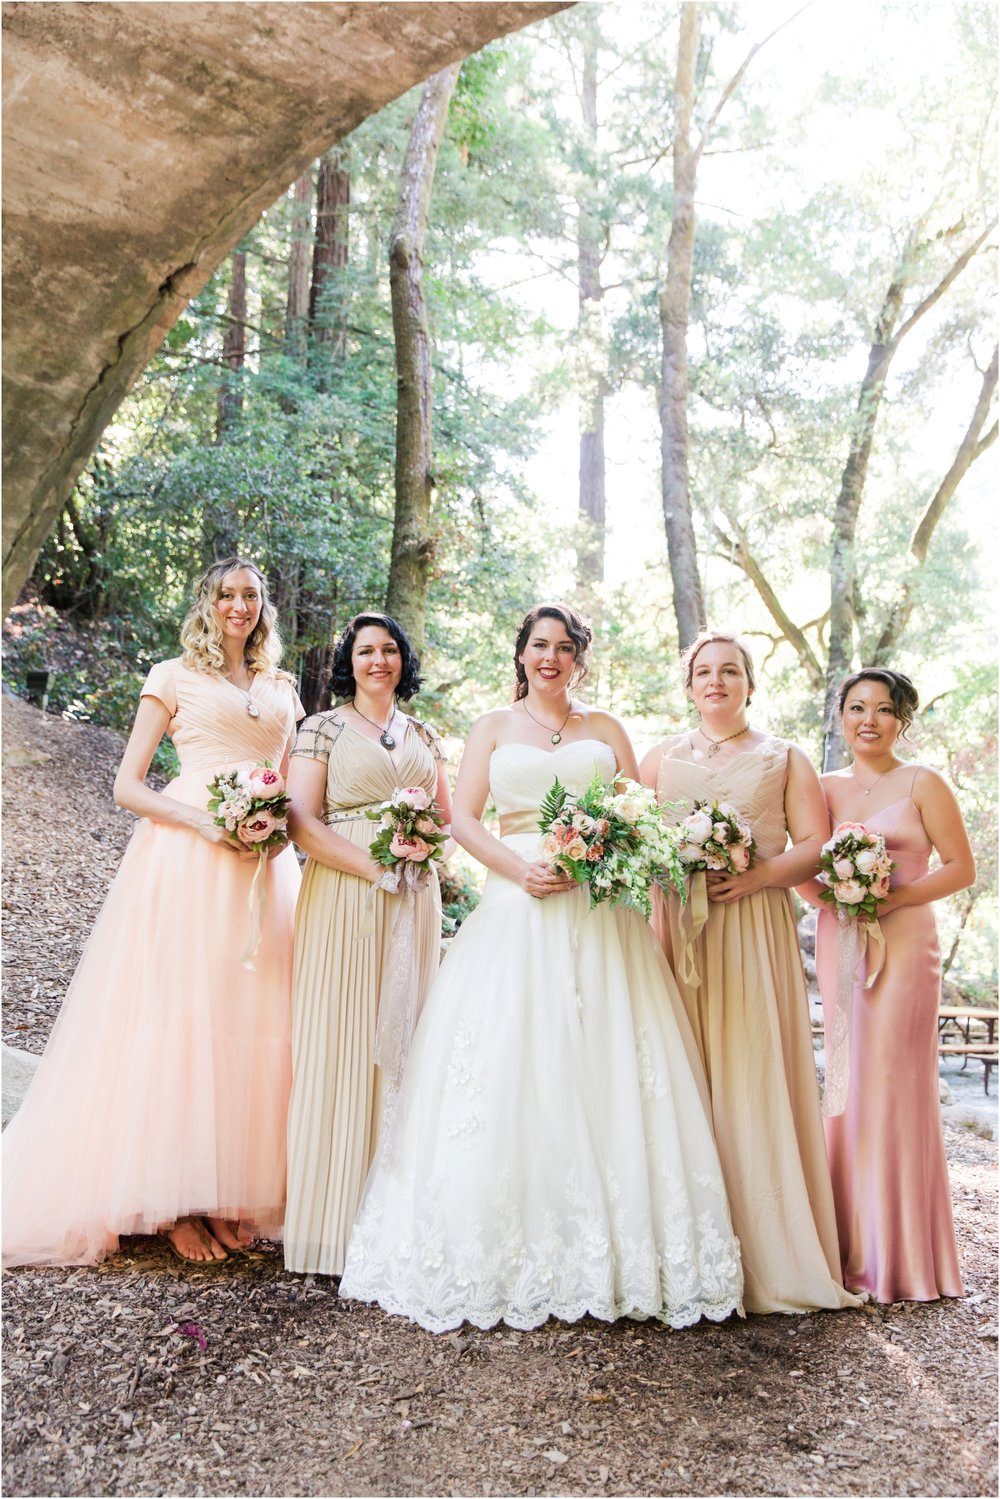 Saratoga Springs wedding pictures by Briana Calderon Photography_1828.jpg